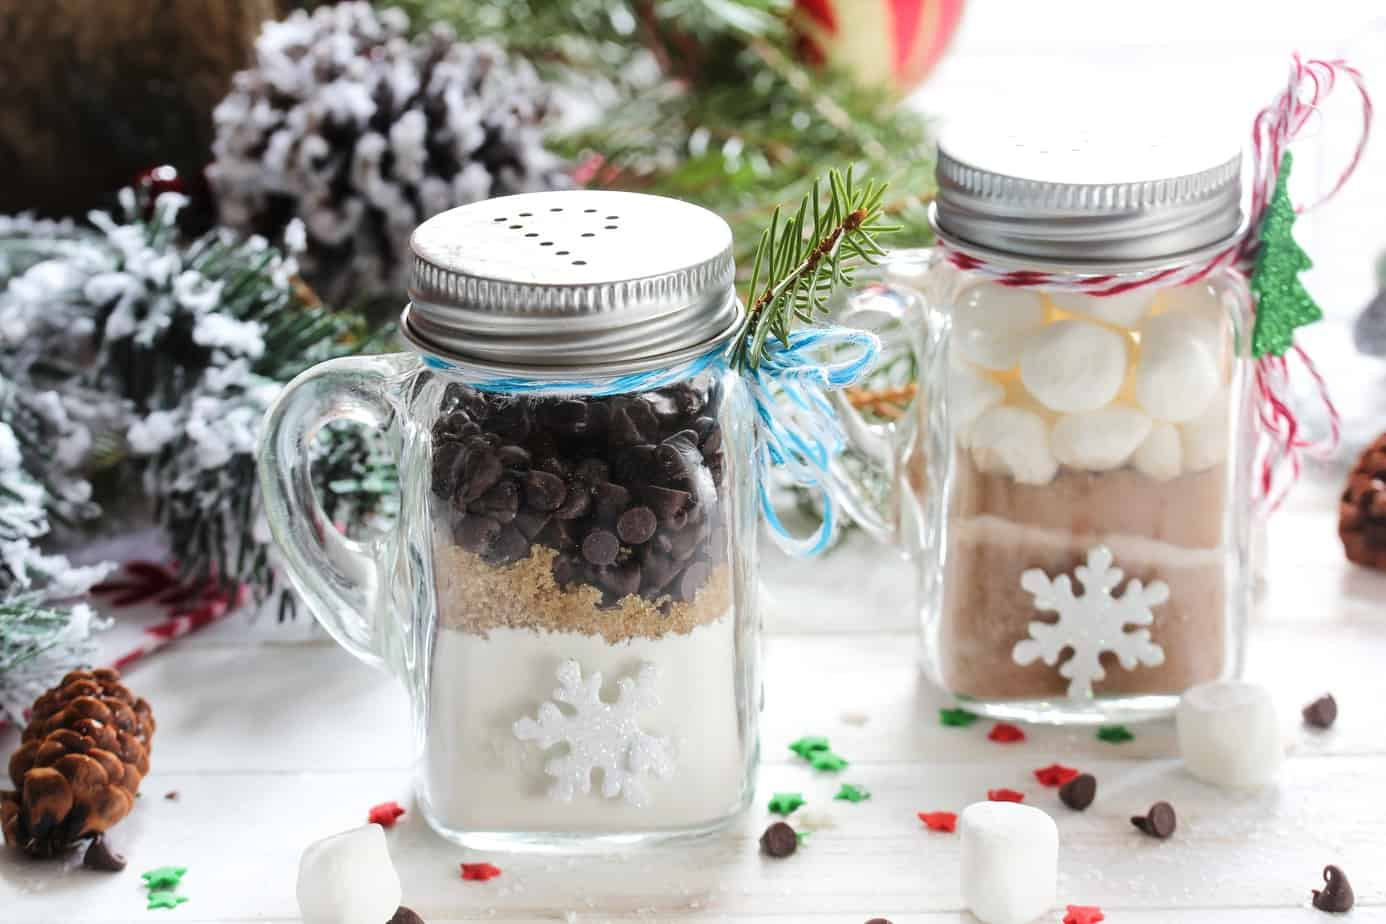 8 Frugal Dessert In A Jar Gifts To Give Or Sell This Holiday Life And A Budget